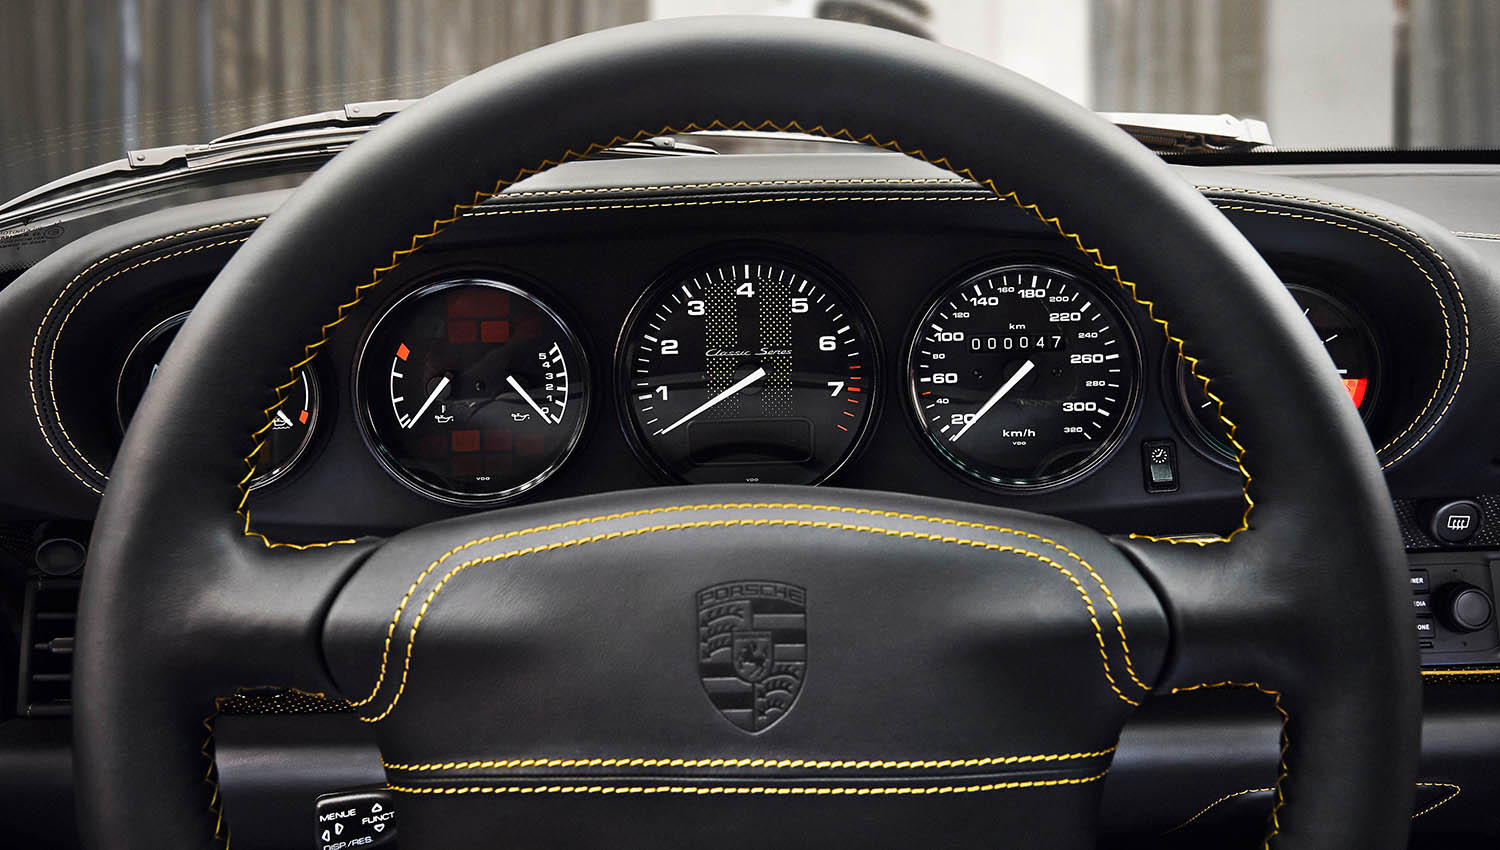 2018-Porsche-911-Turbo--Classic-Series-Project-Gold-_9.jpg